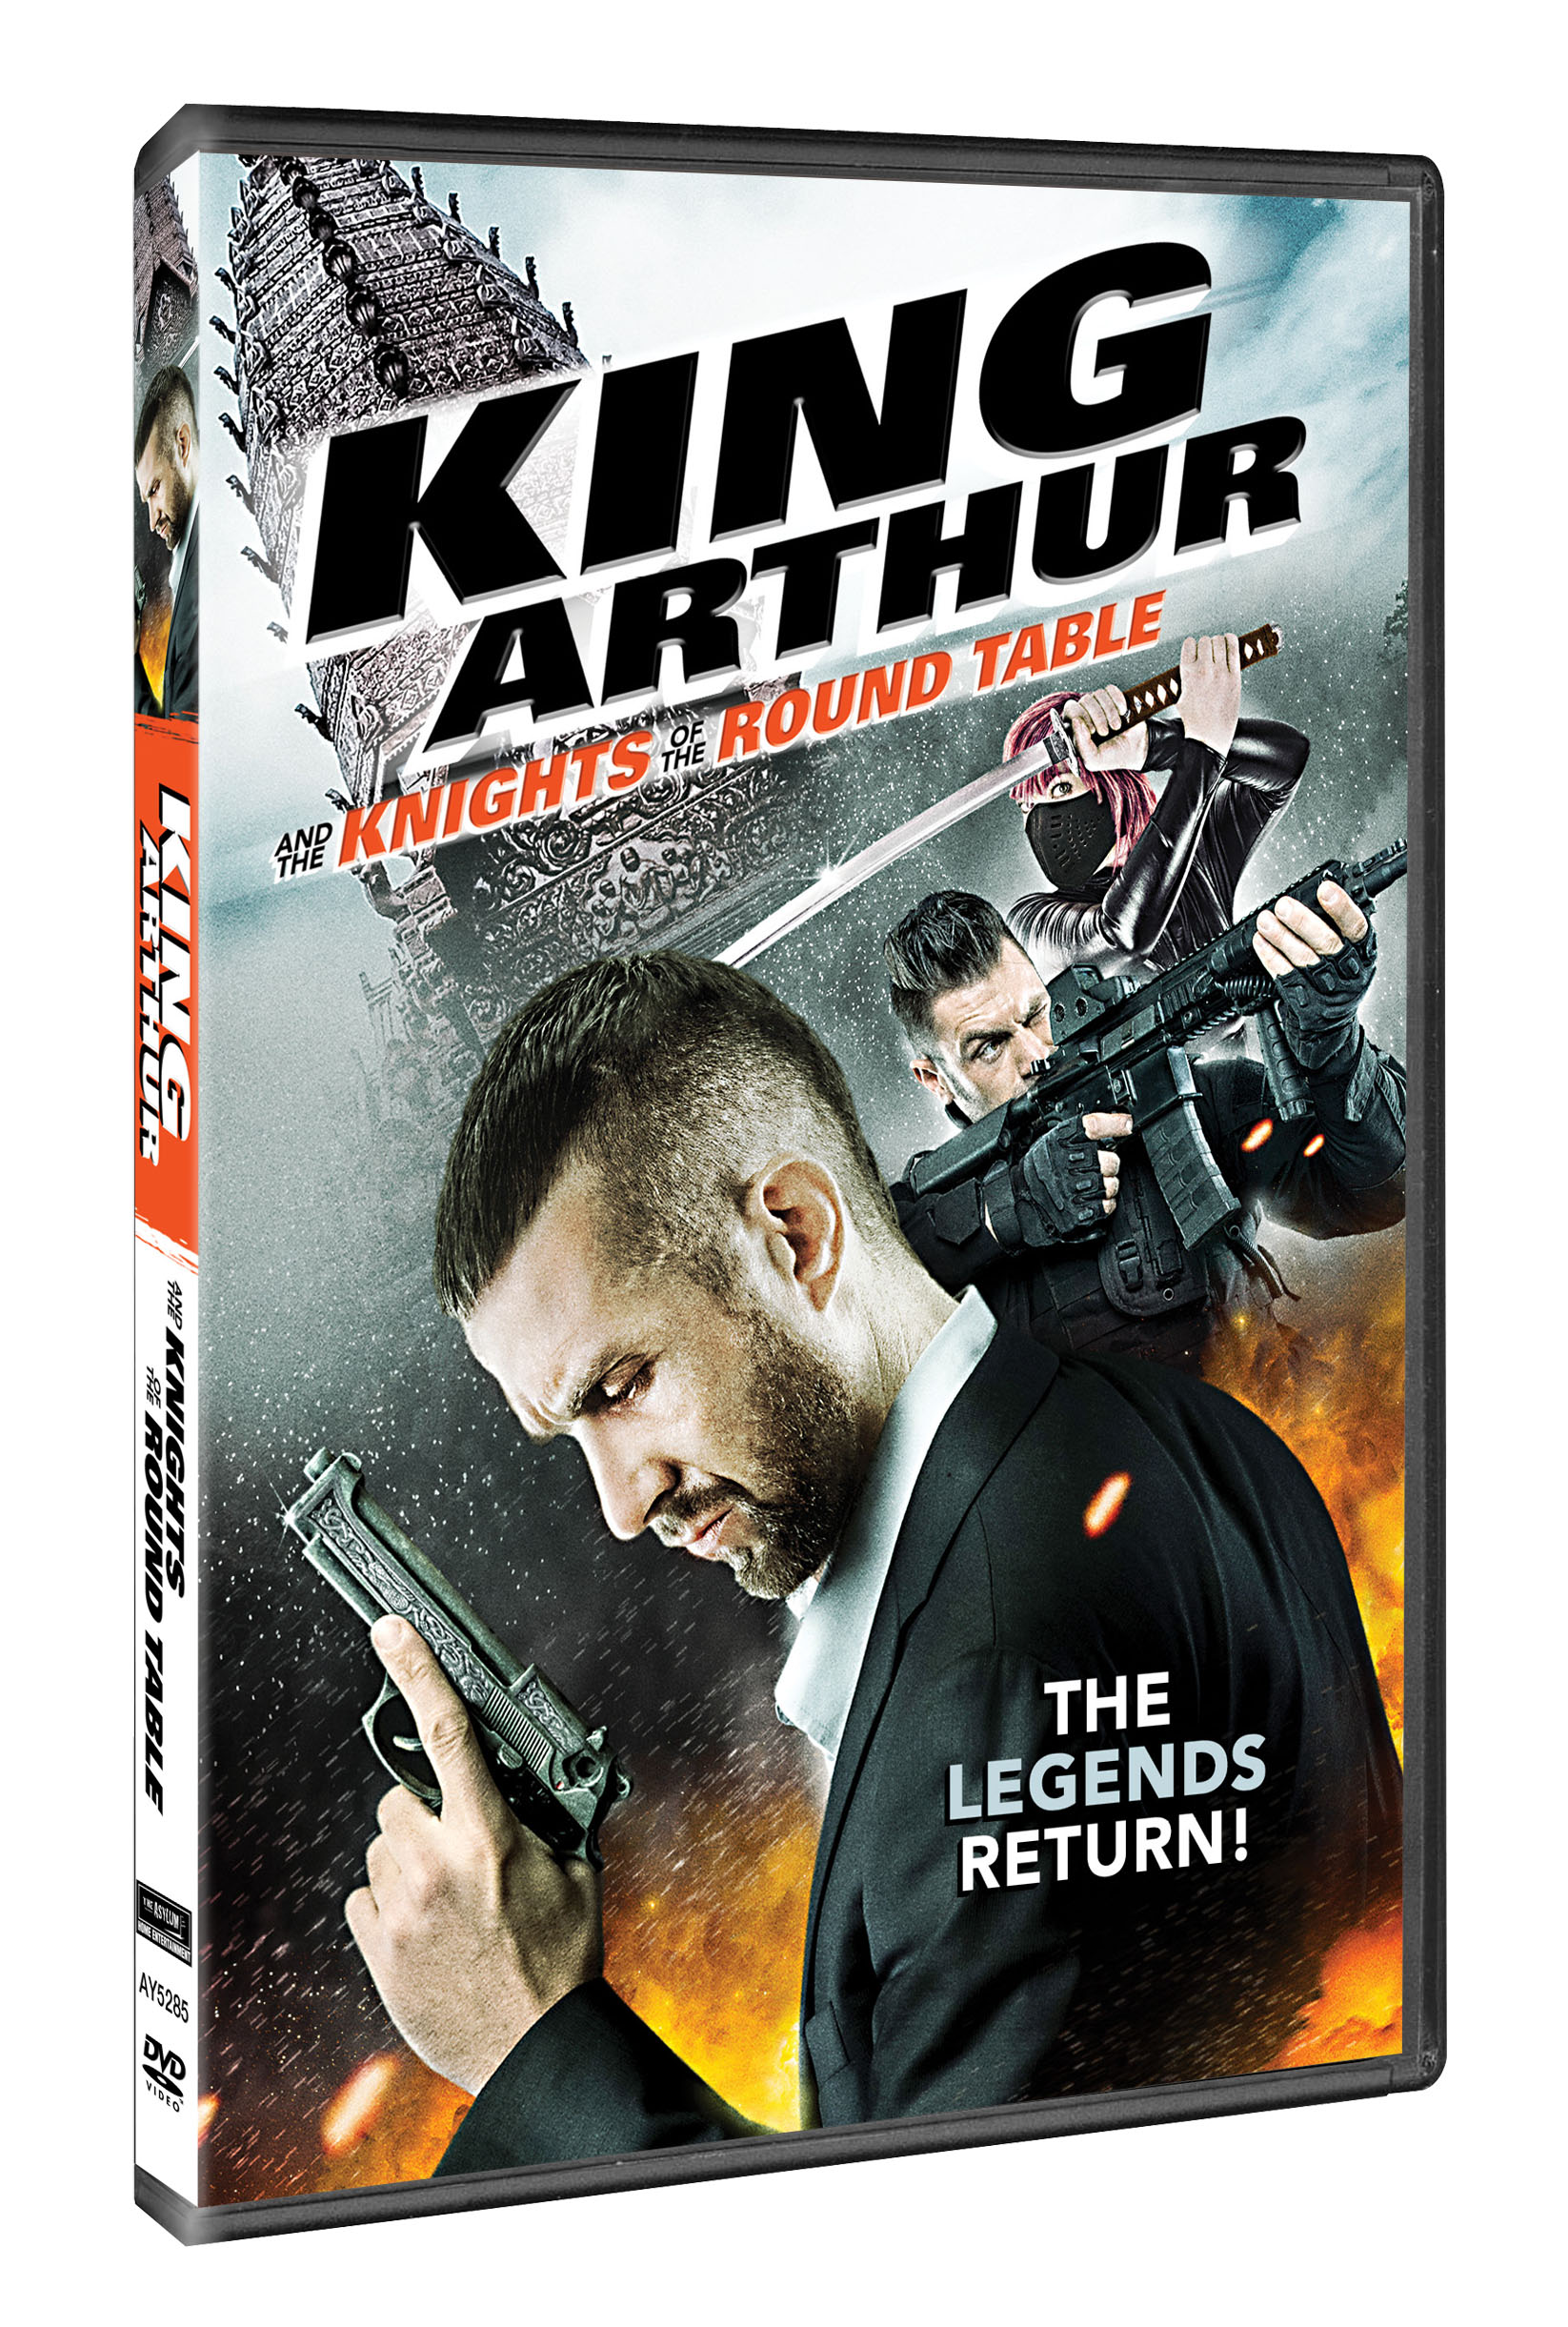 an overview of arthurian legend stories about king arthur As early as the celts, mentions of king arthur can be found  if someone were to  ask for a thorough description of arthurian legend, it would be  perhaps the  richest stories and aspects of arthurian legend come from the.